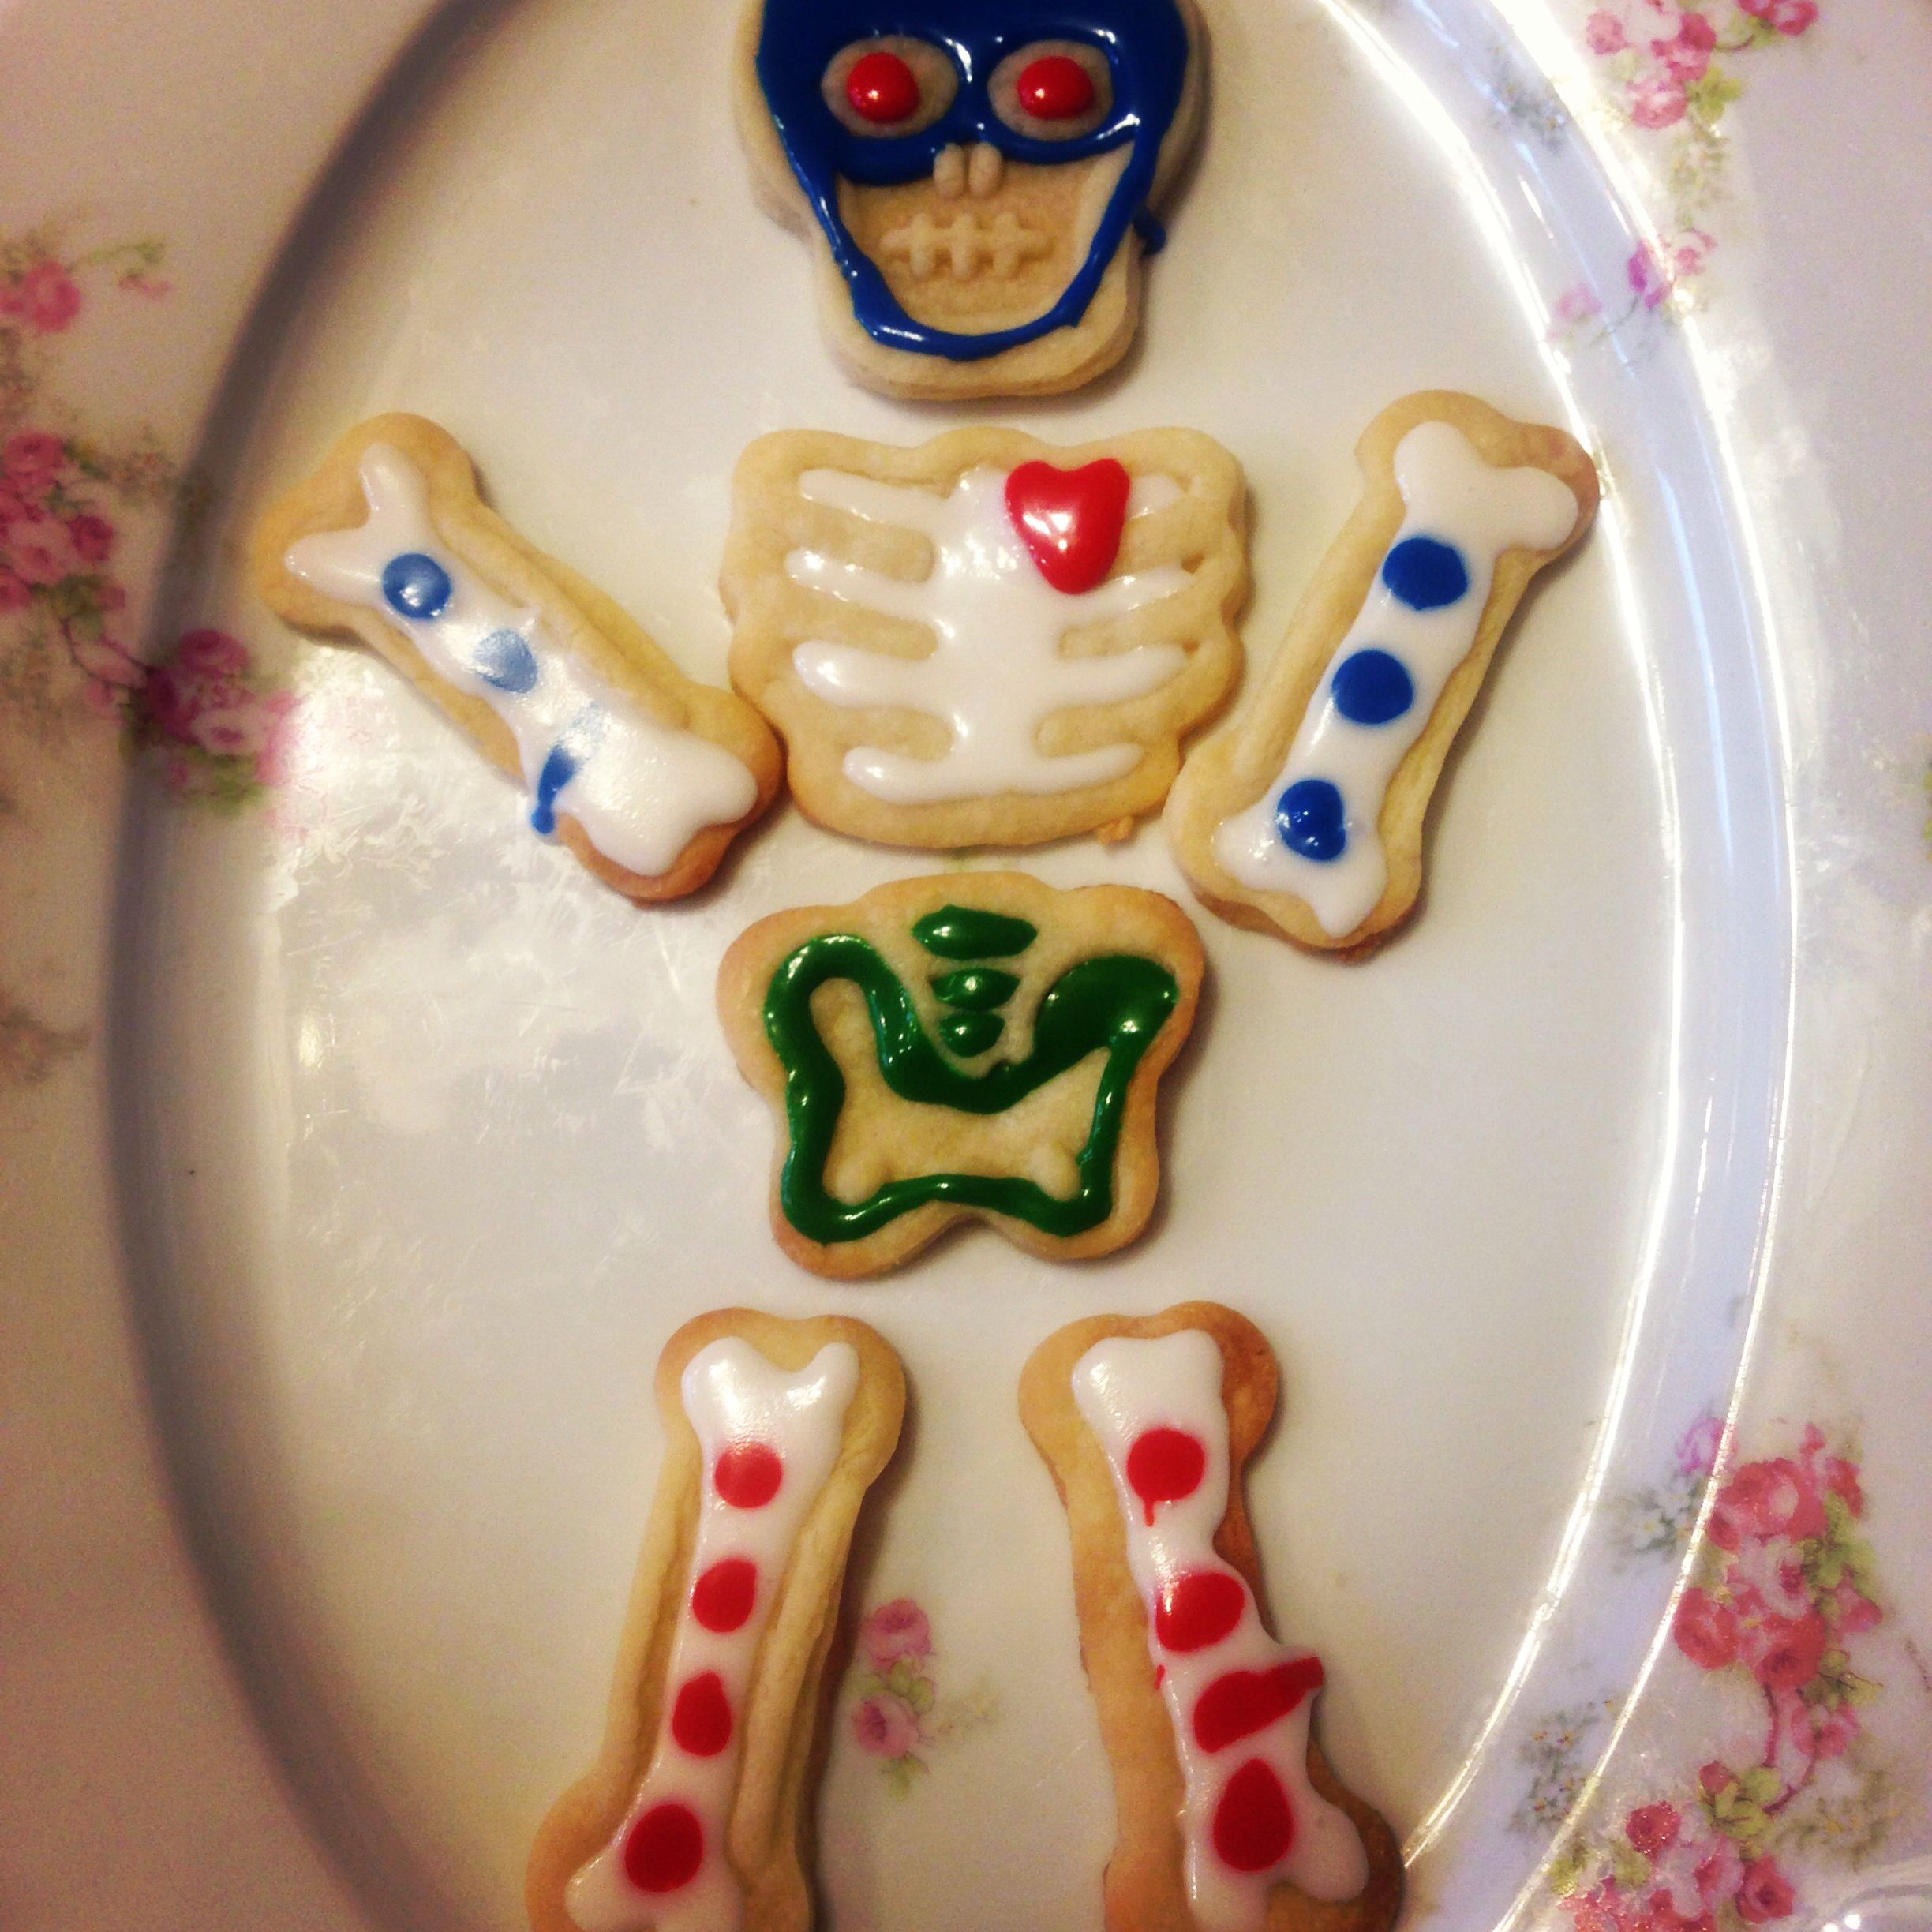 My skull cut out cookies with frosting!